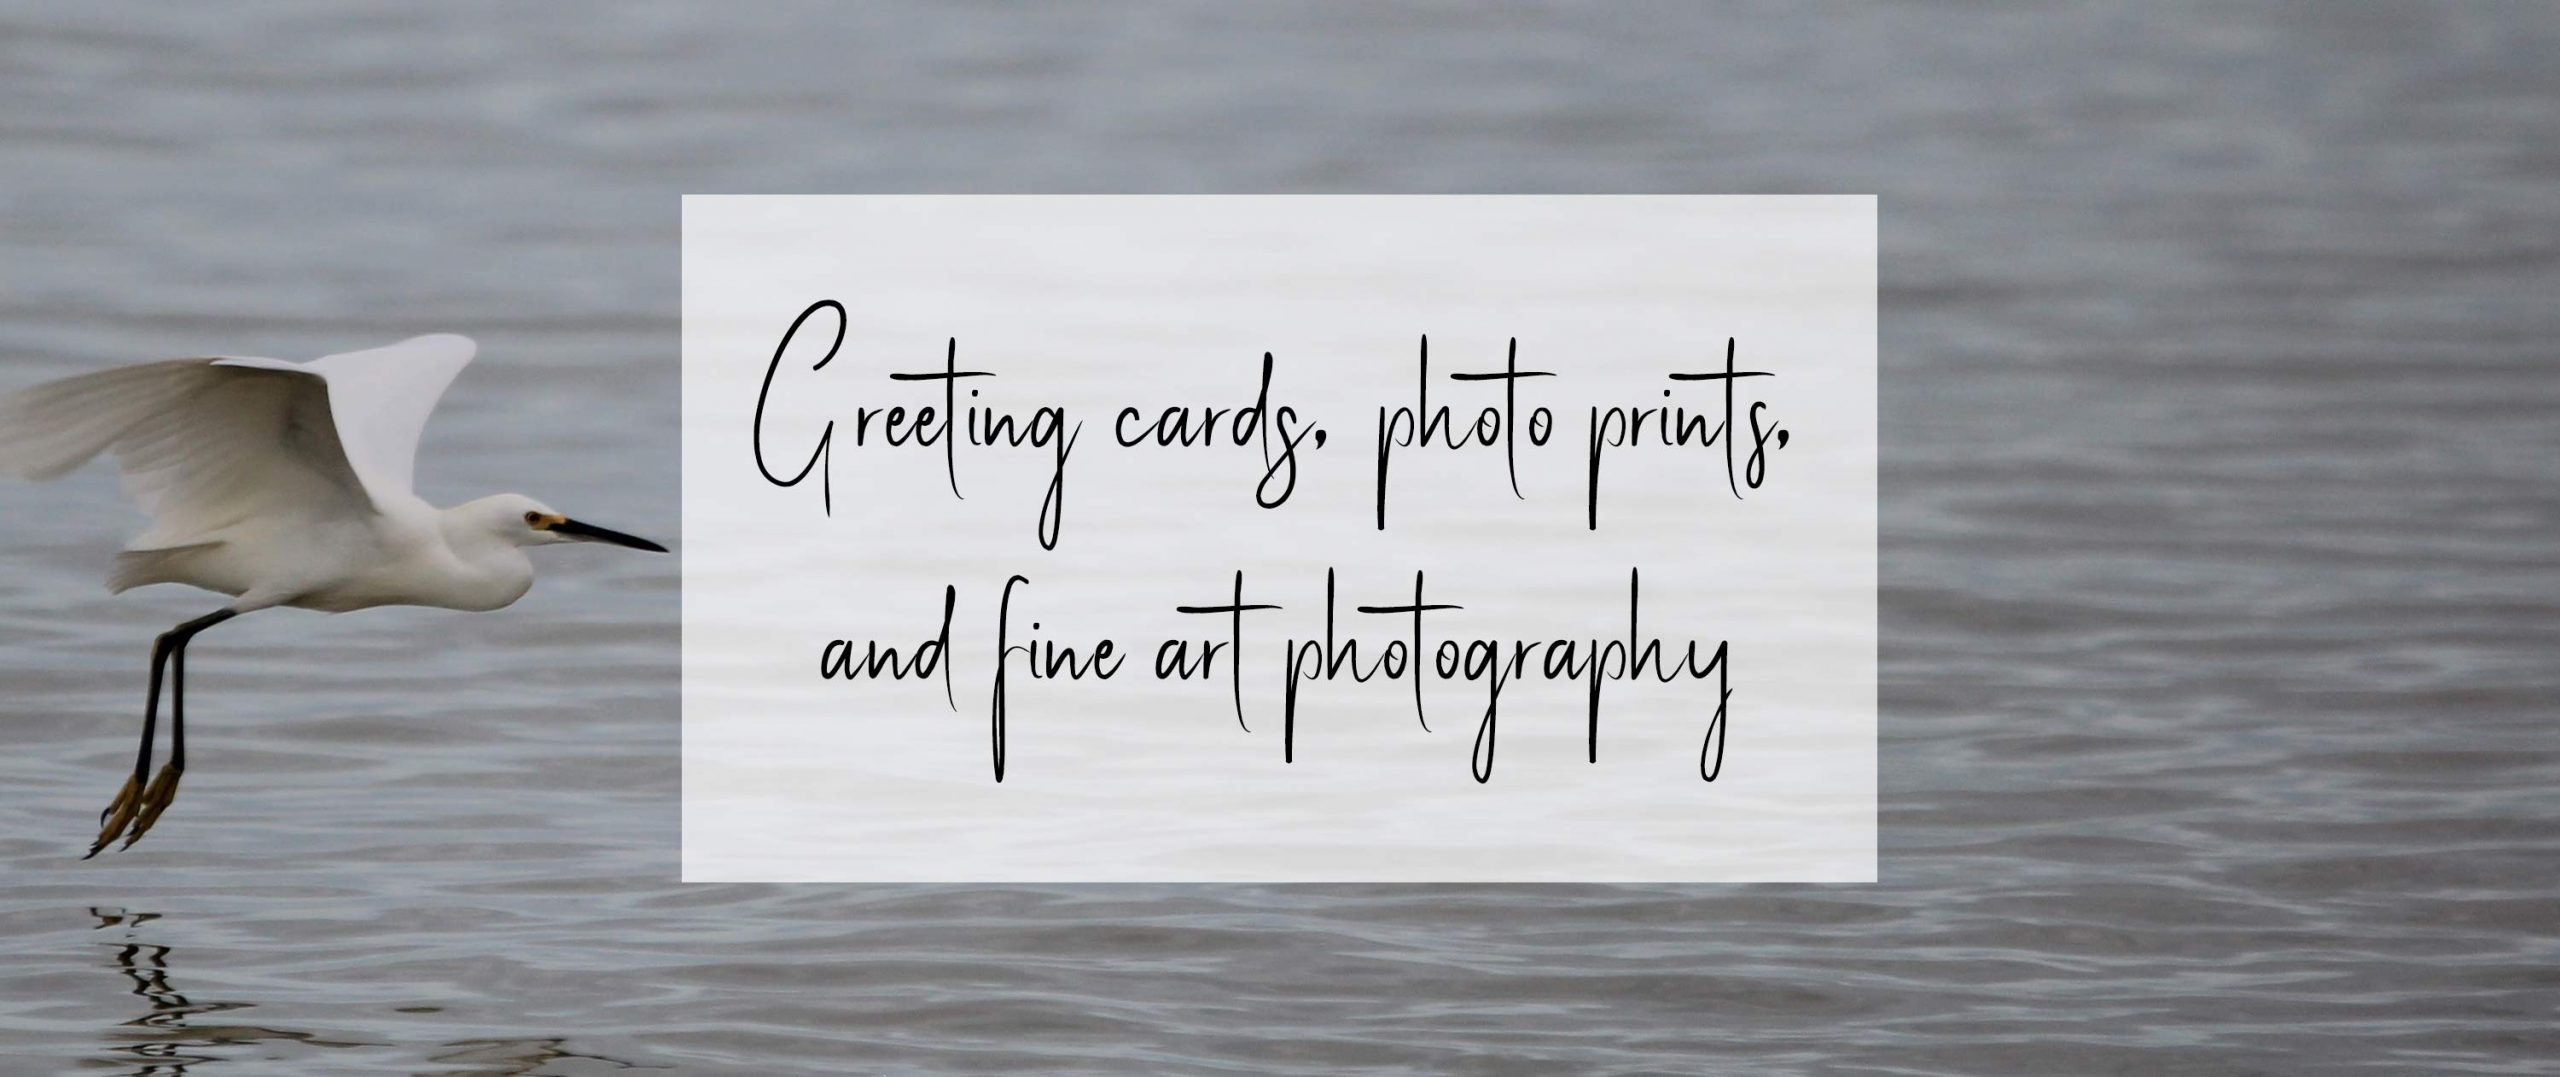 Greeting Cards, Fine Art Photography & Photo Prints